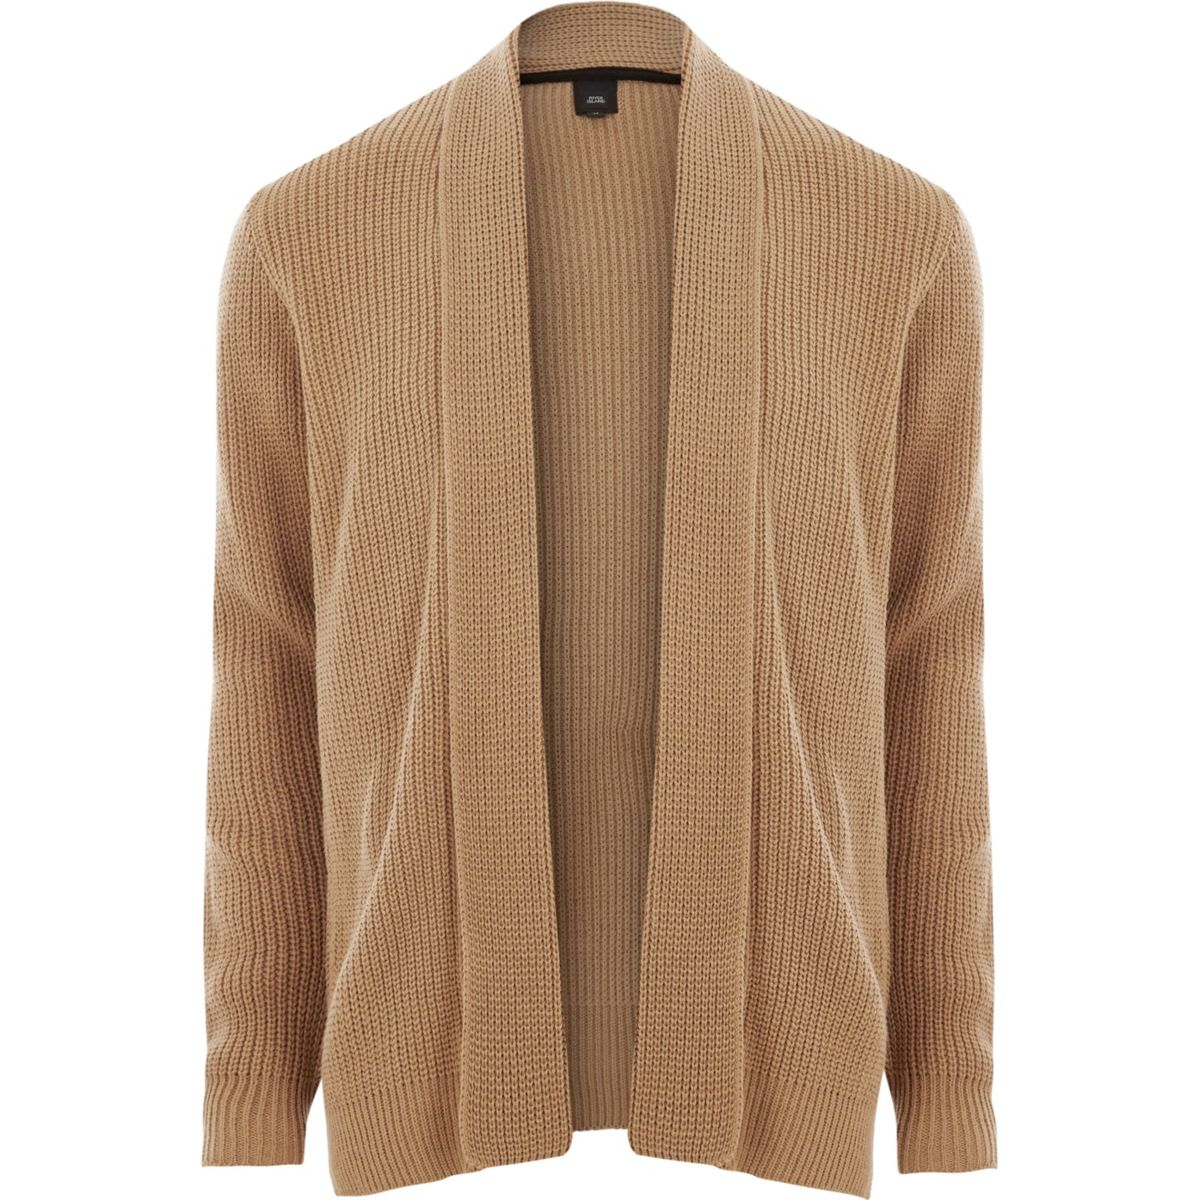 Light brown open front rib knit cardigan - Cardigans - Sweaters ...